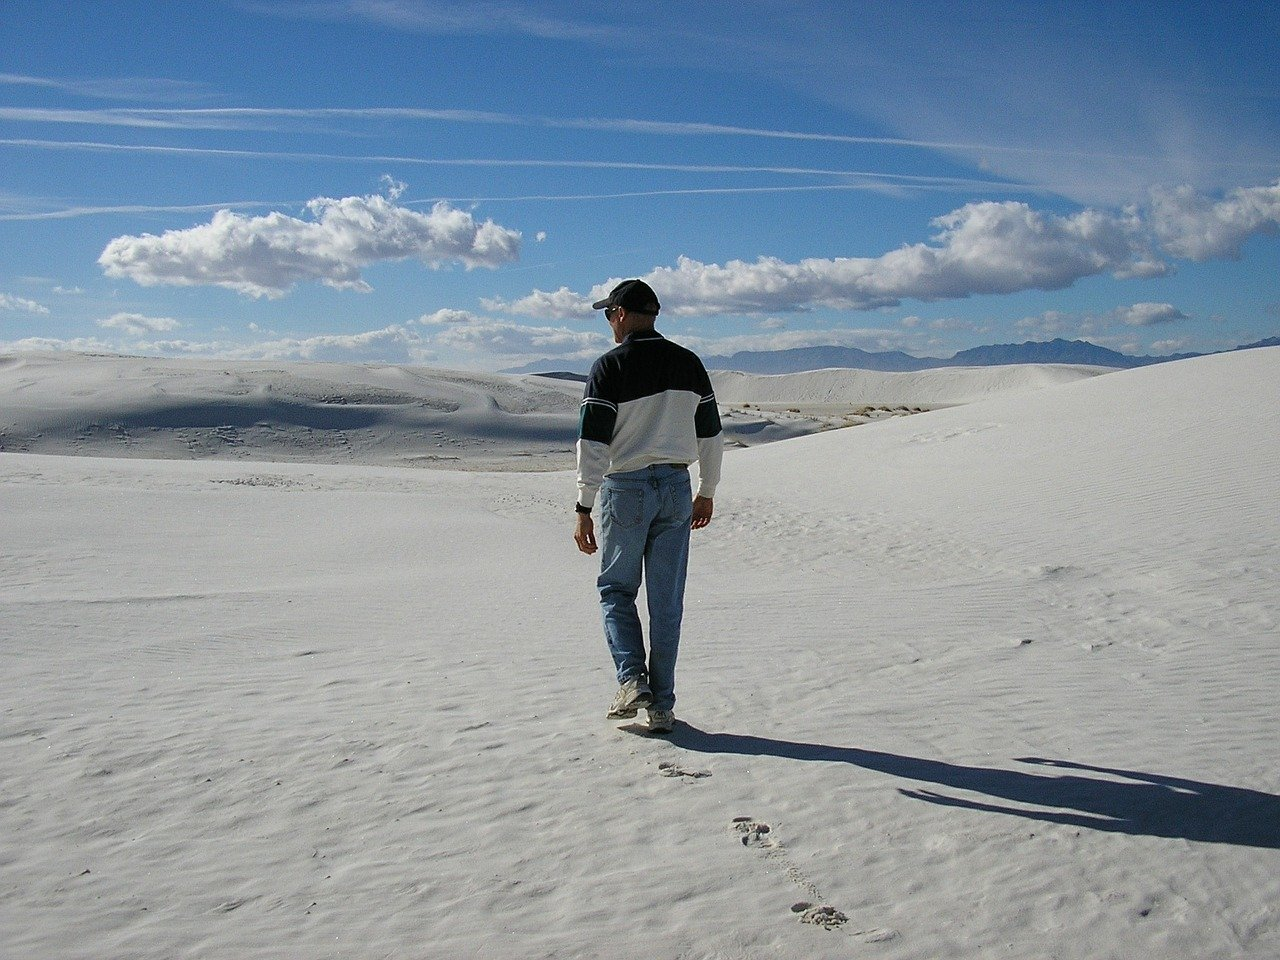 Top-Rated Place in New Mexico-White Sands/Chihuahuan Desert